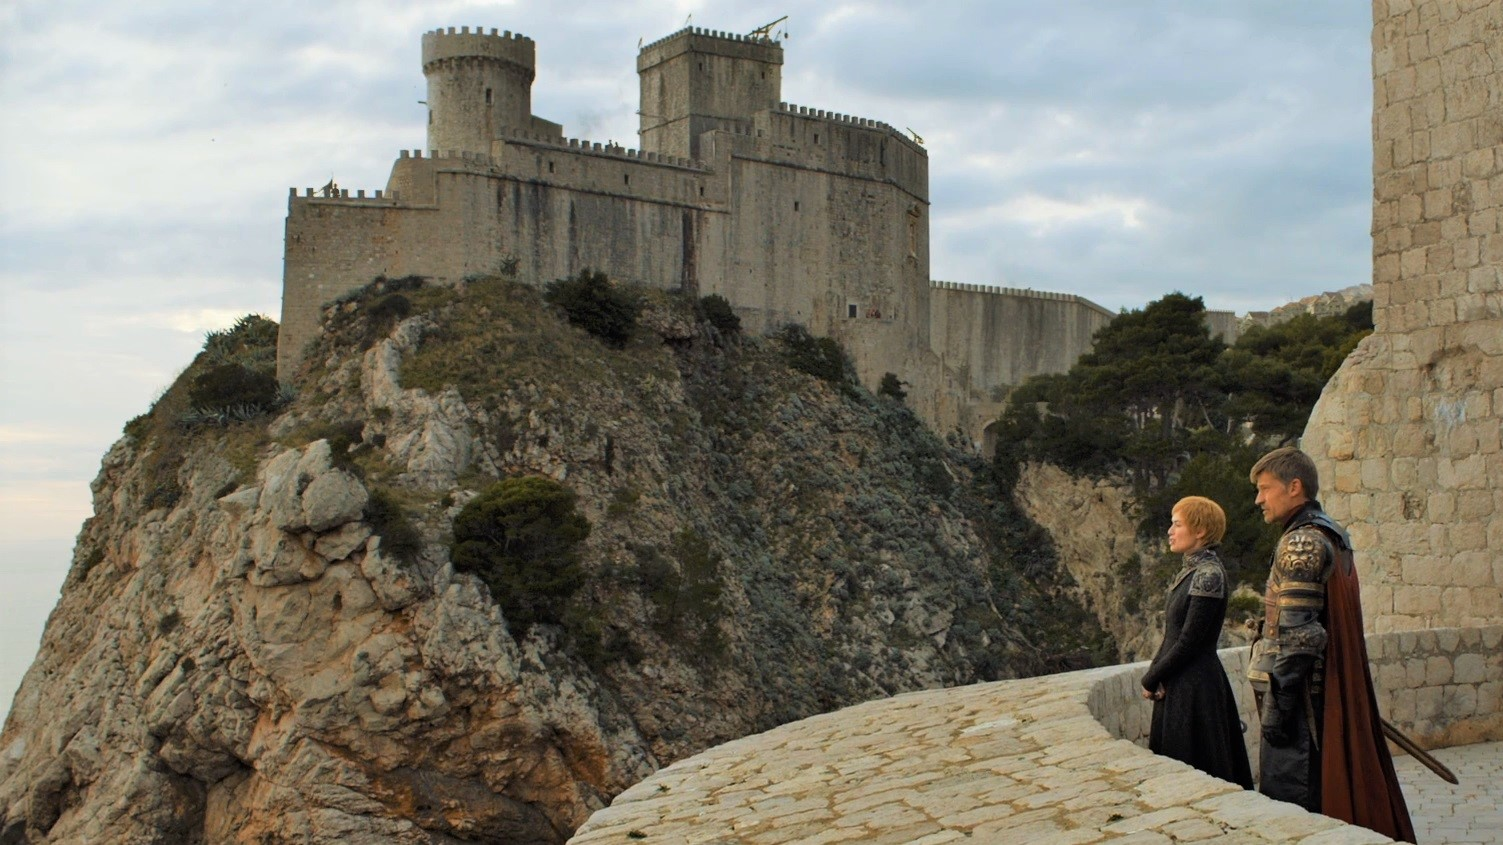 Dubrovnik city walls as seen on Game of Thrones